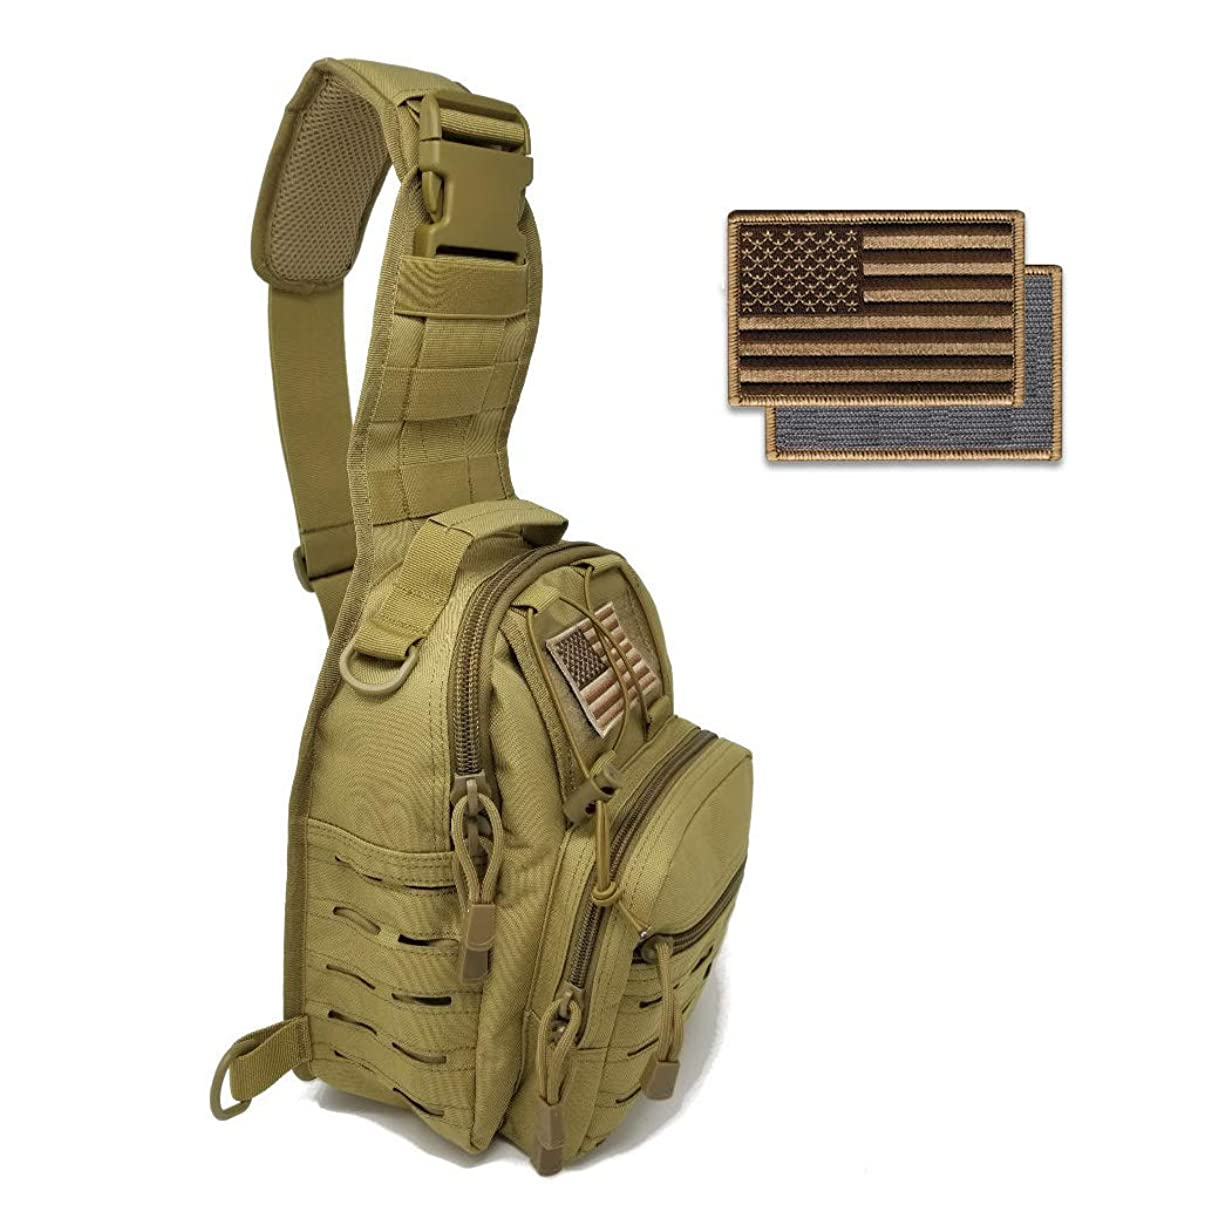 Gearrific Cross Body Tactical Sling Bag EDC Military Style Small Messenger Pack + Free Flag Patch